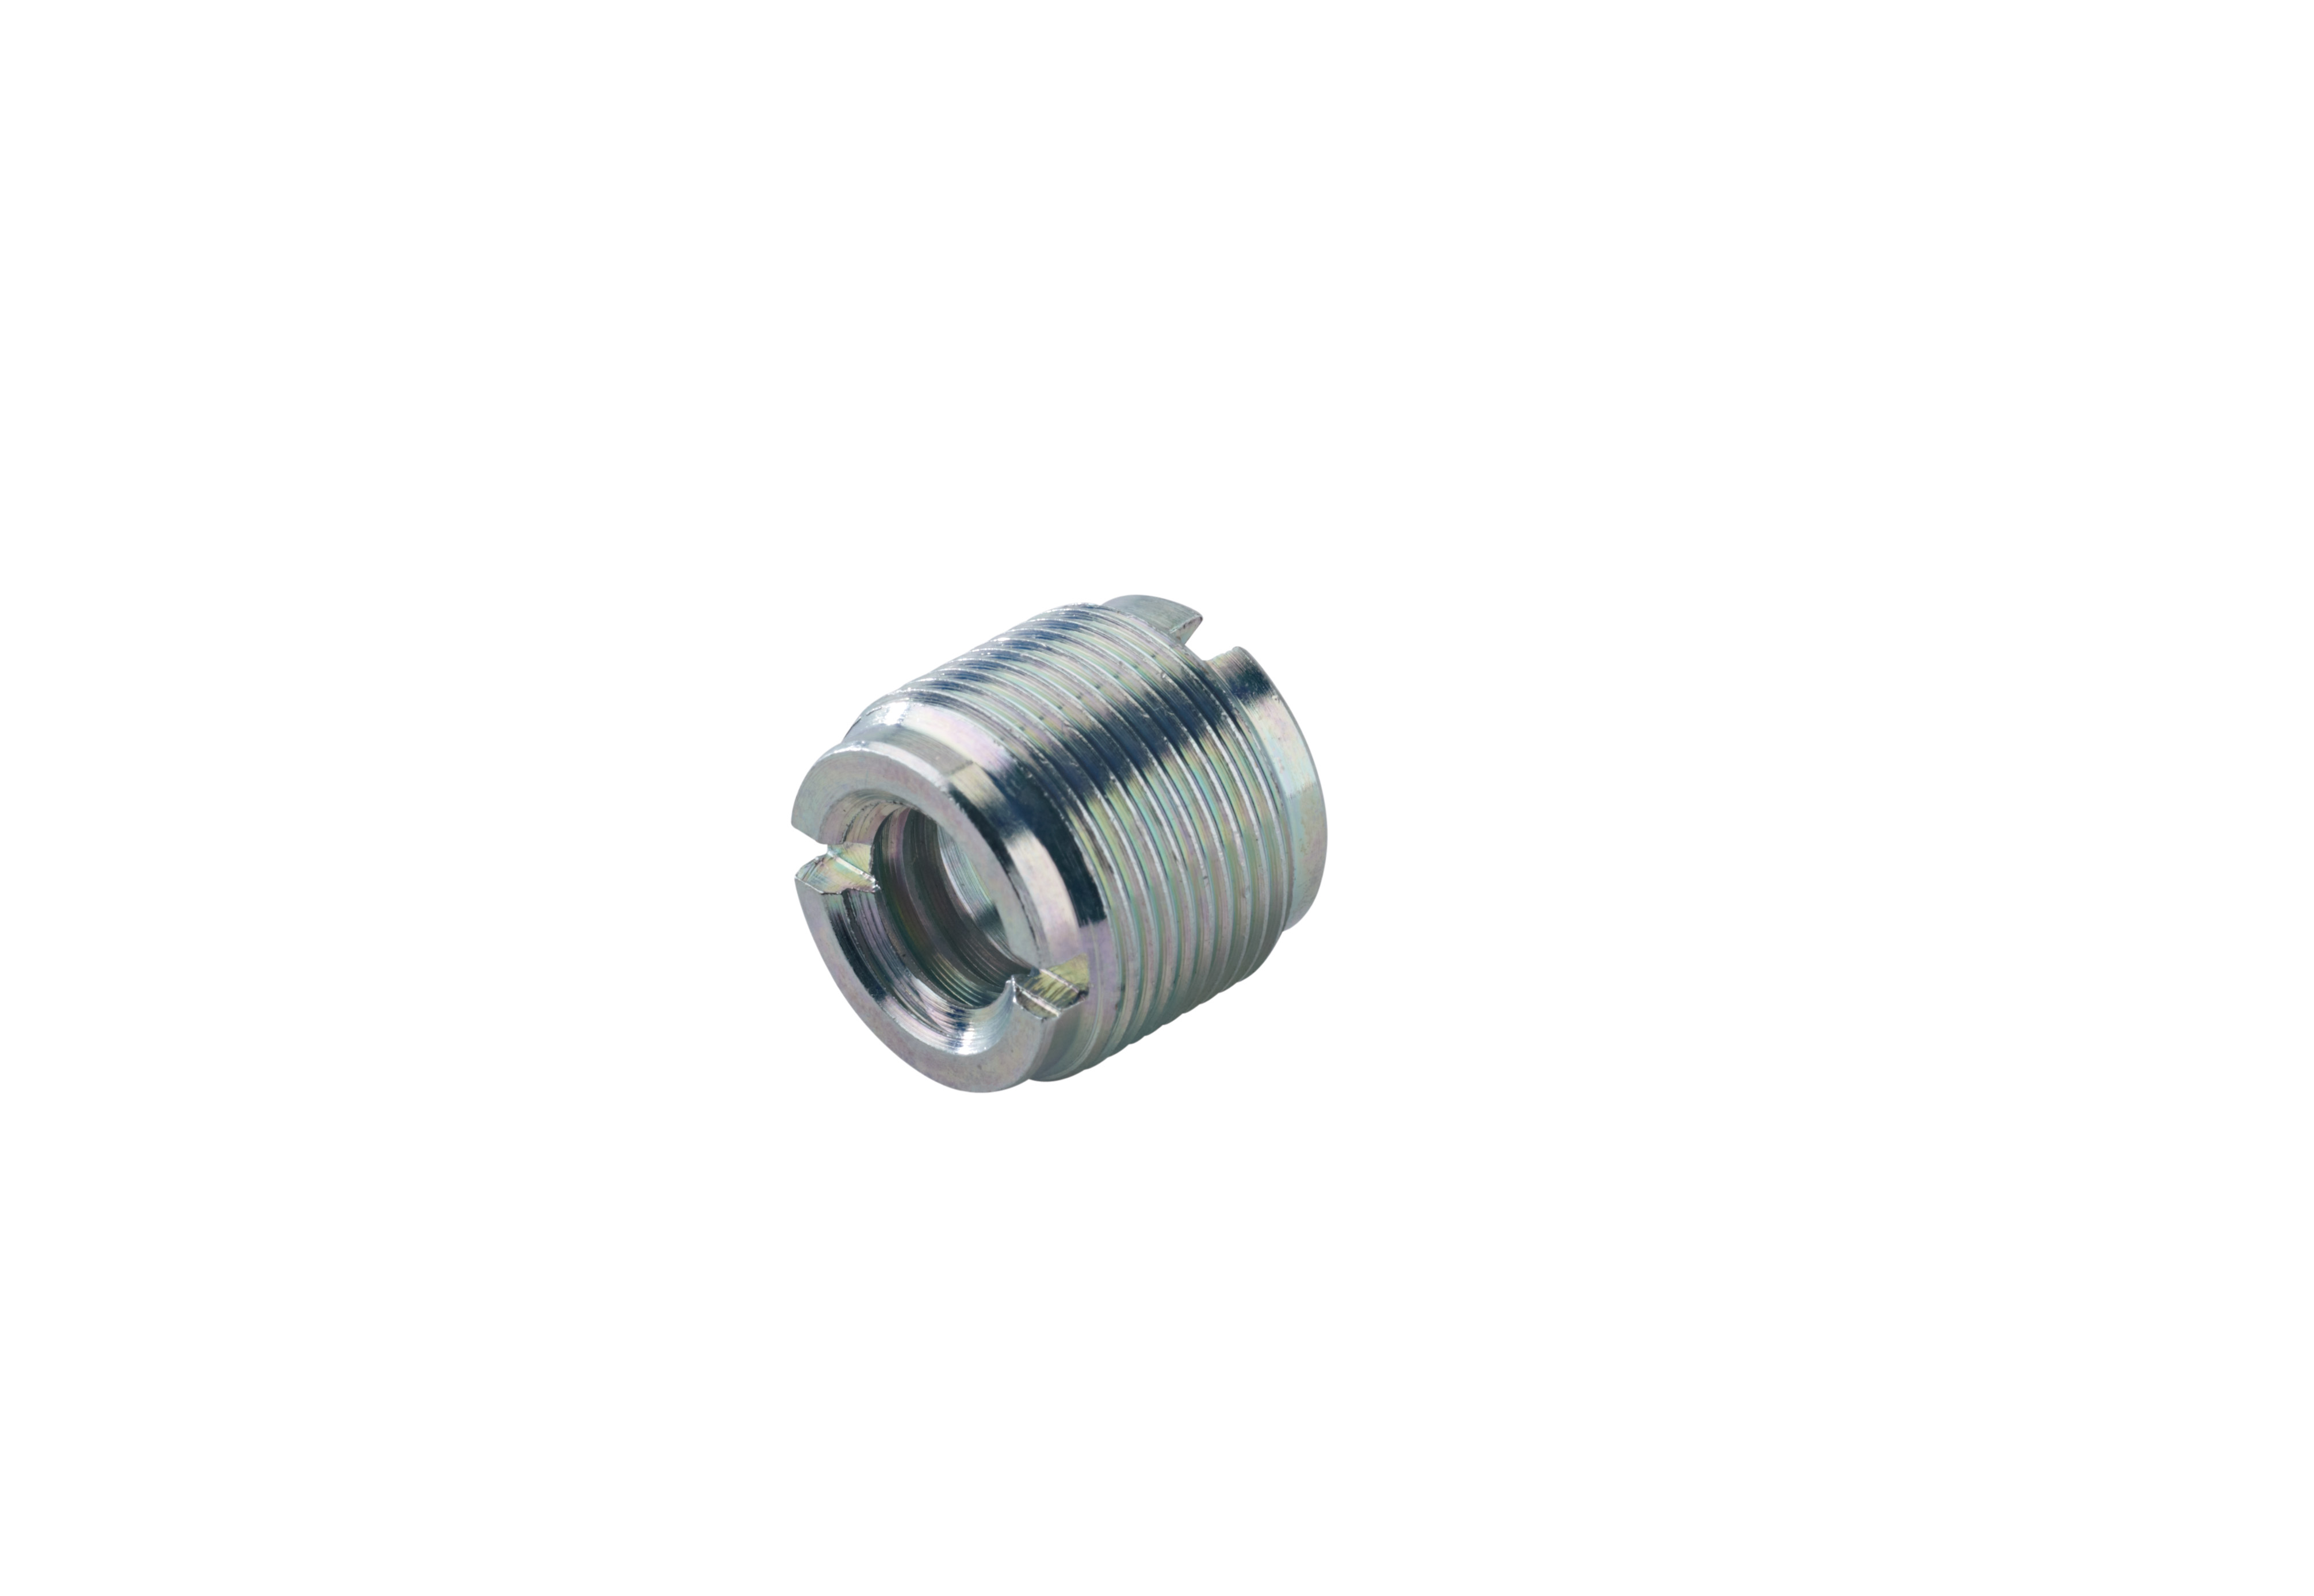 K&M Thread Adapter Zinc Plated 1/2 - 3/8 inch